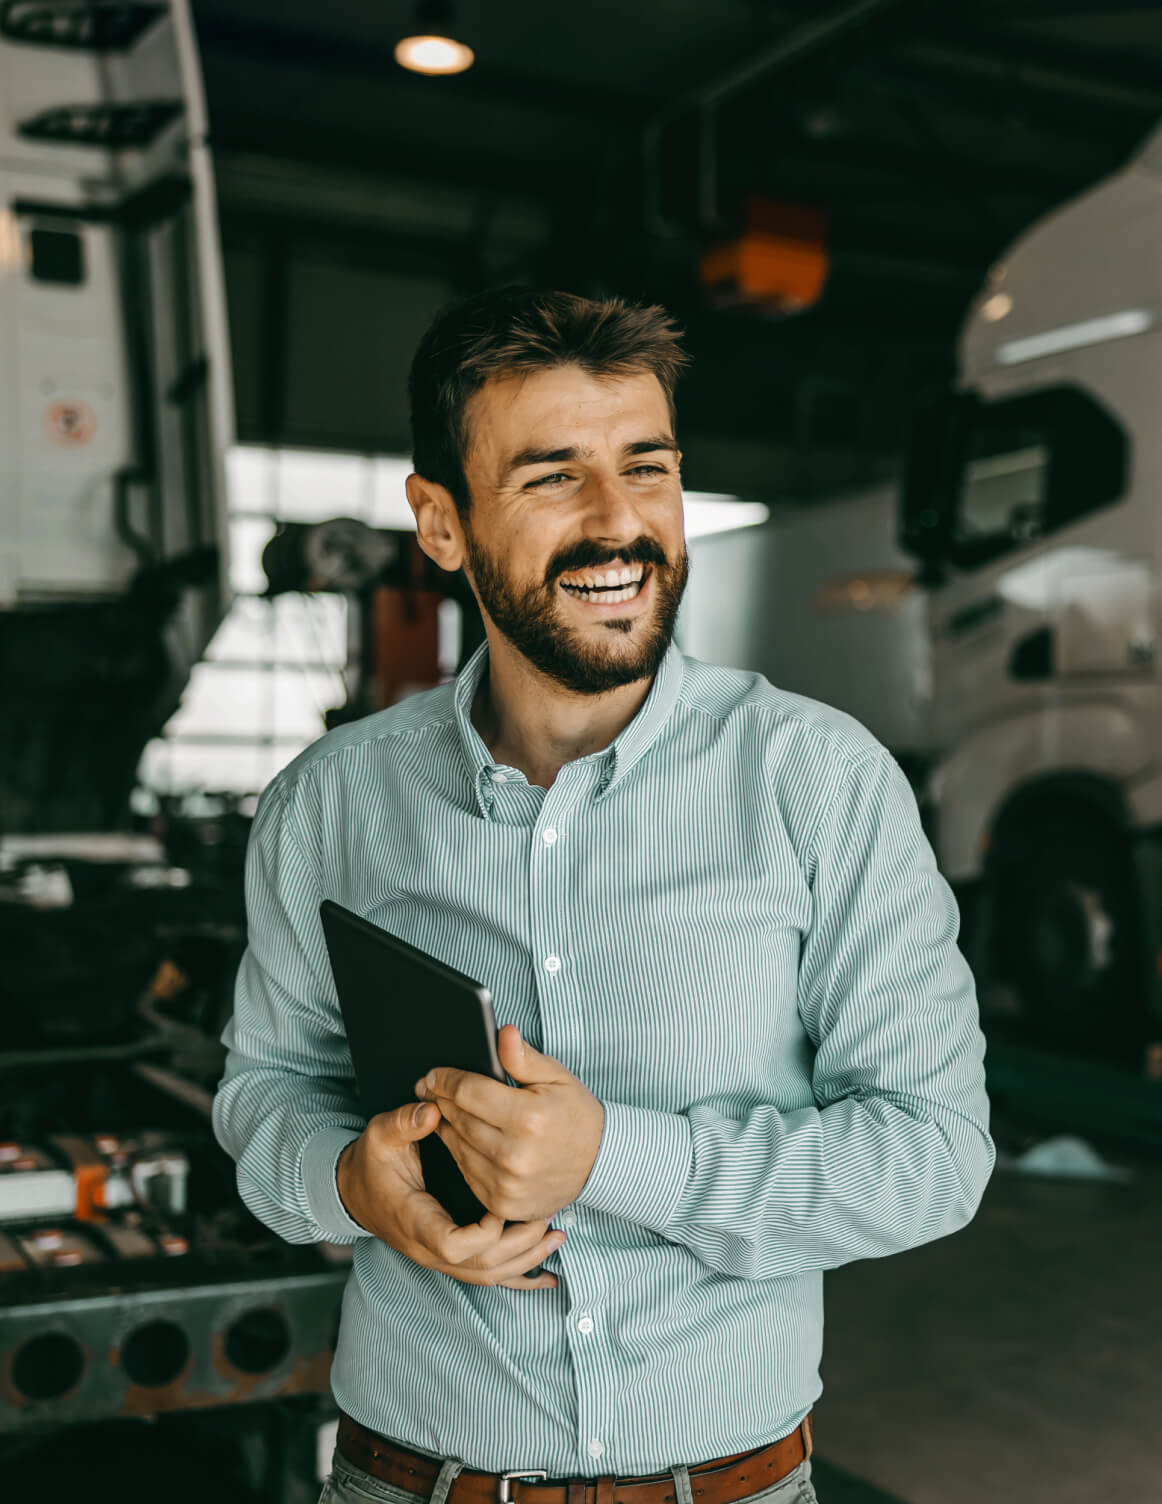 person smiling and holding an ipad in a vehicle hanger